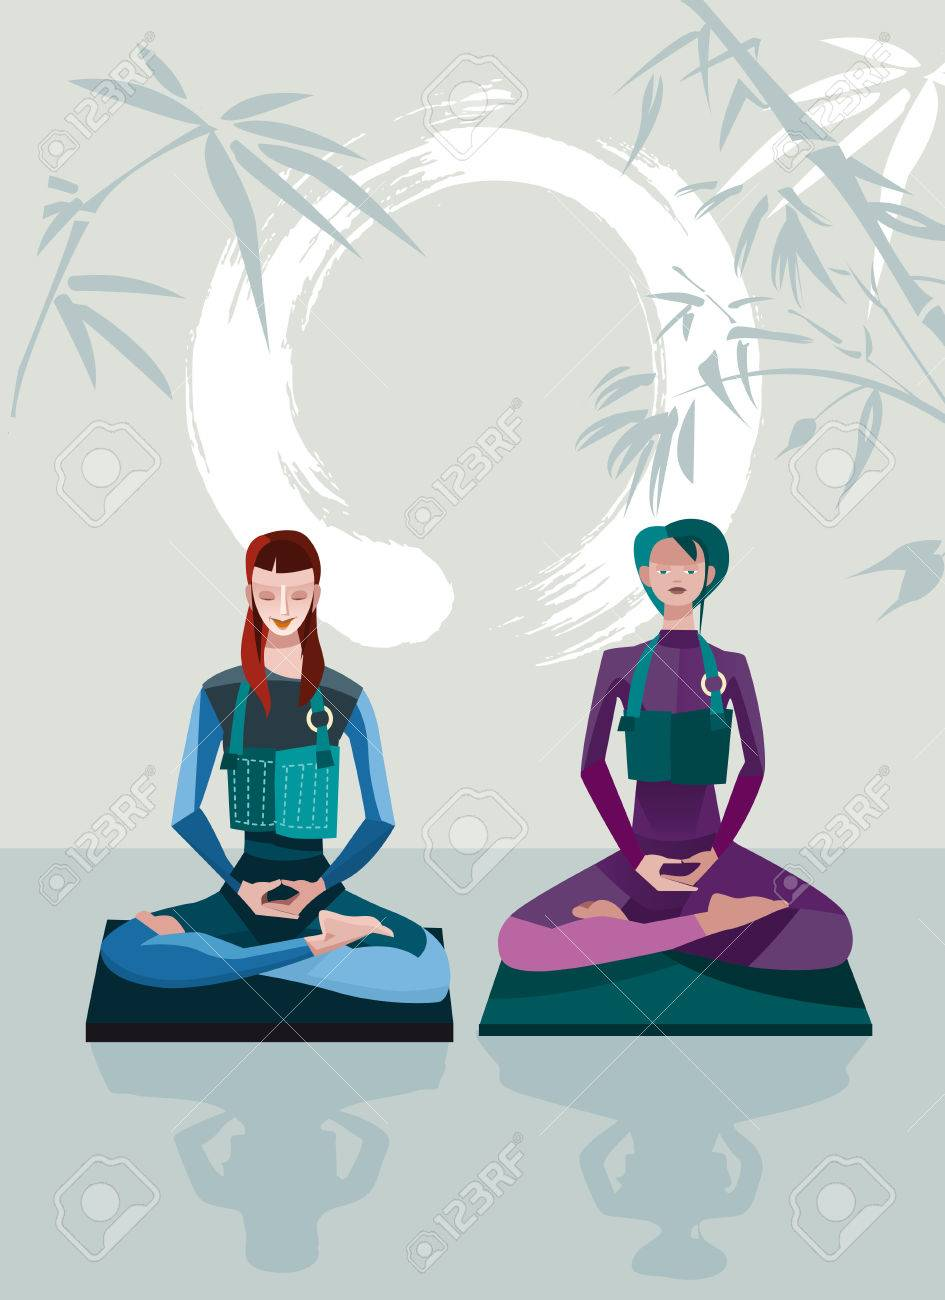 Two Women Meditating sitting in the lotus position, practicing silent meditation  behind them a large calligraphic circle that represents the behind them a large calligraphic circle represents the emptiness  They belong to the tradition of Zen Buddhism Stock Vector - 27523528